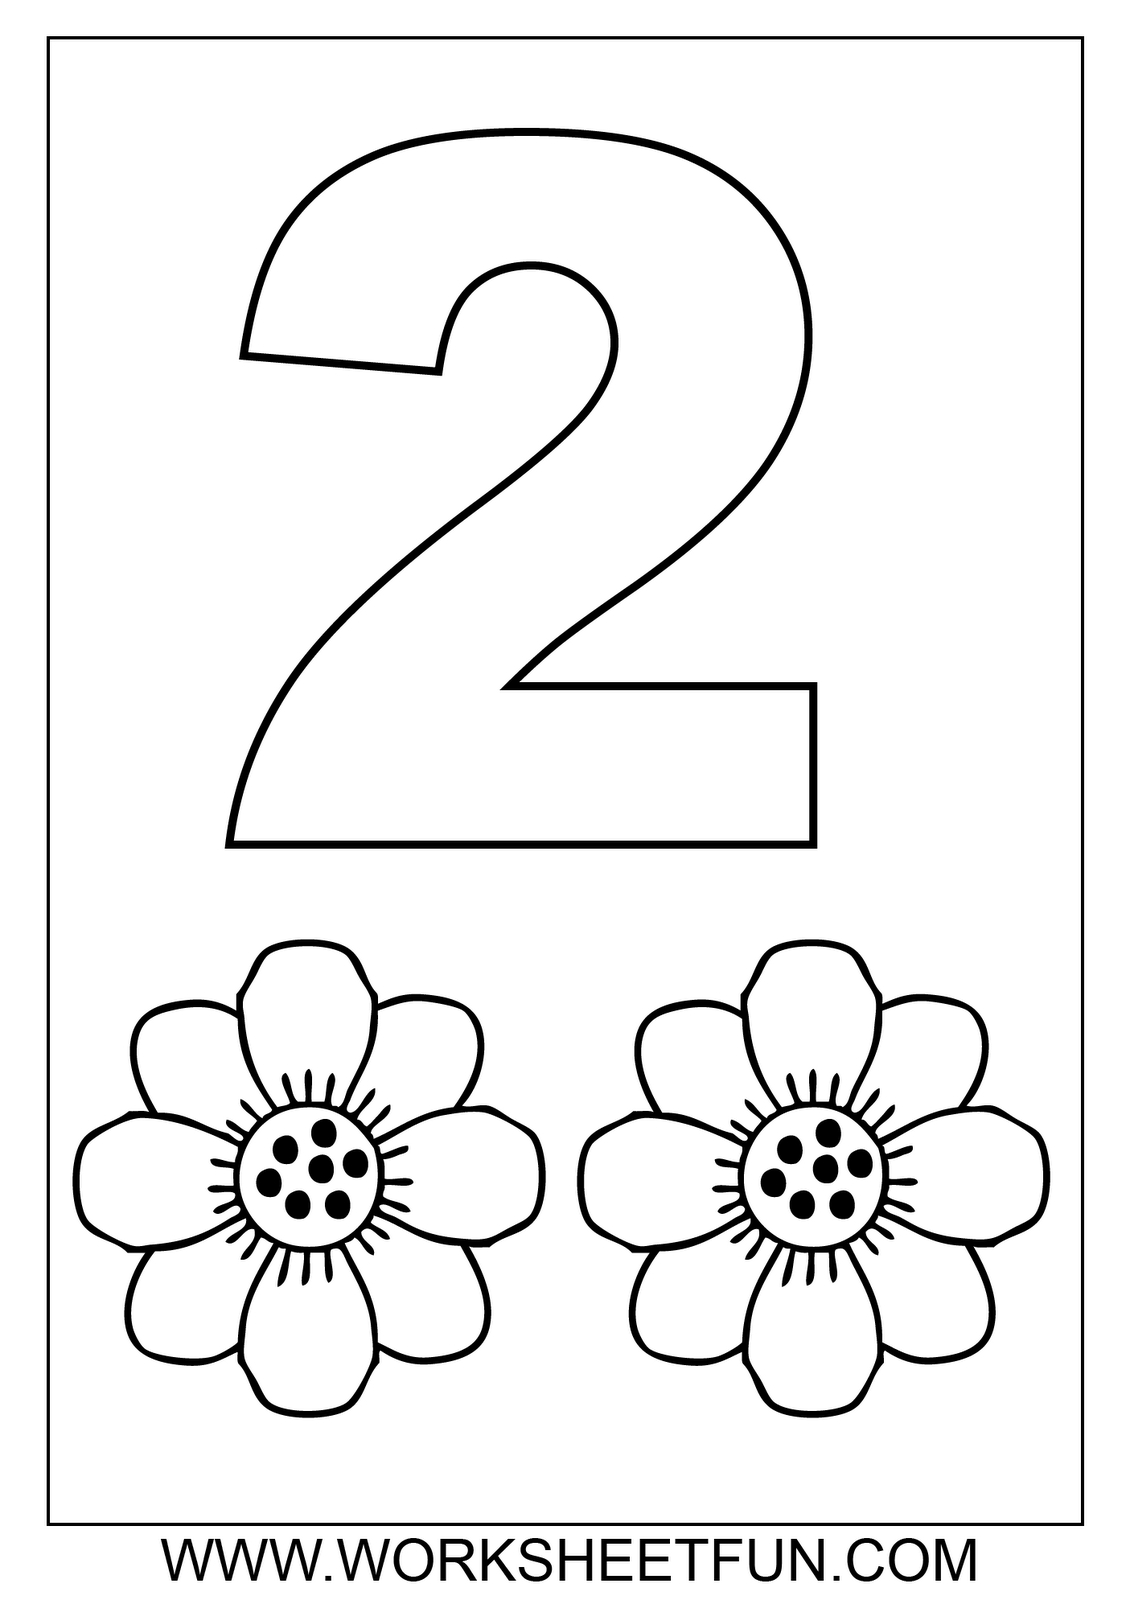 Number One Worksheet Preschool Printable Activities